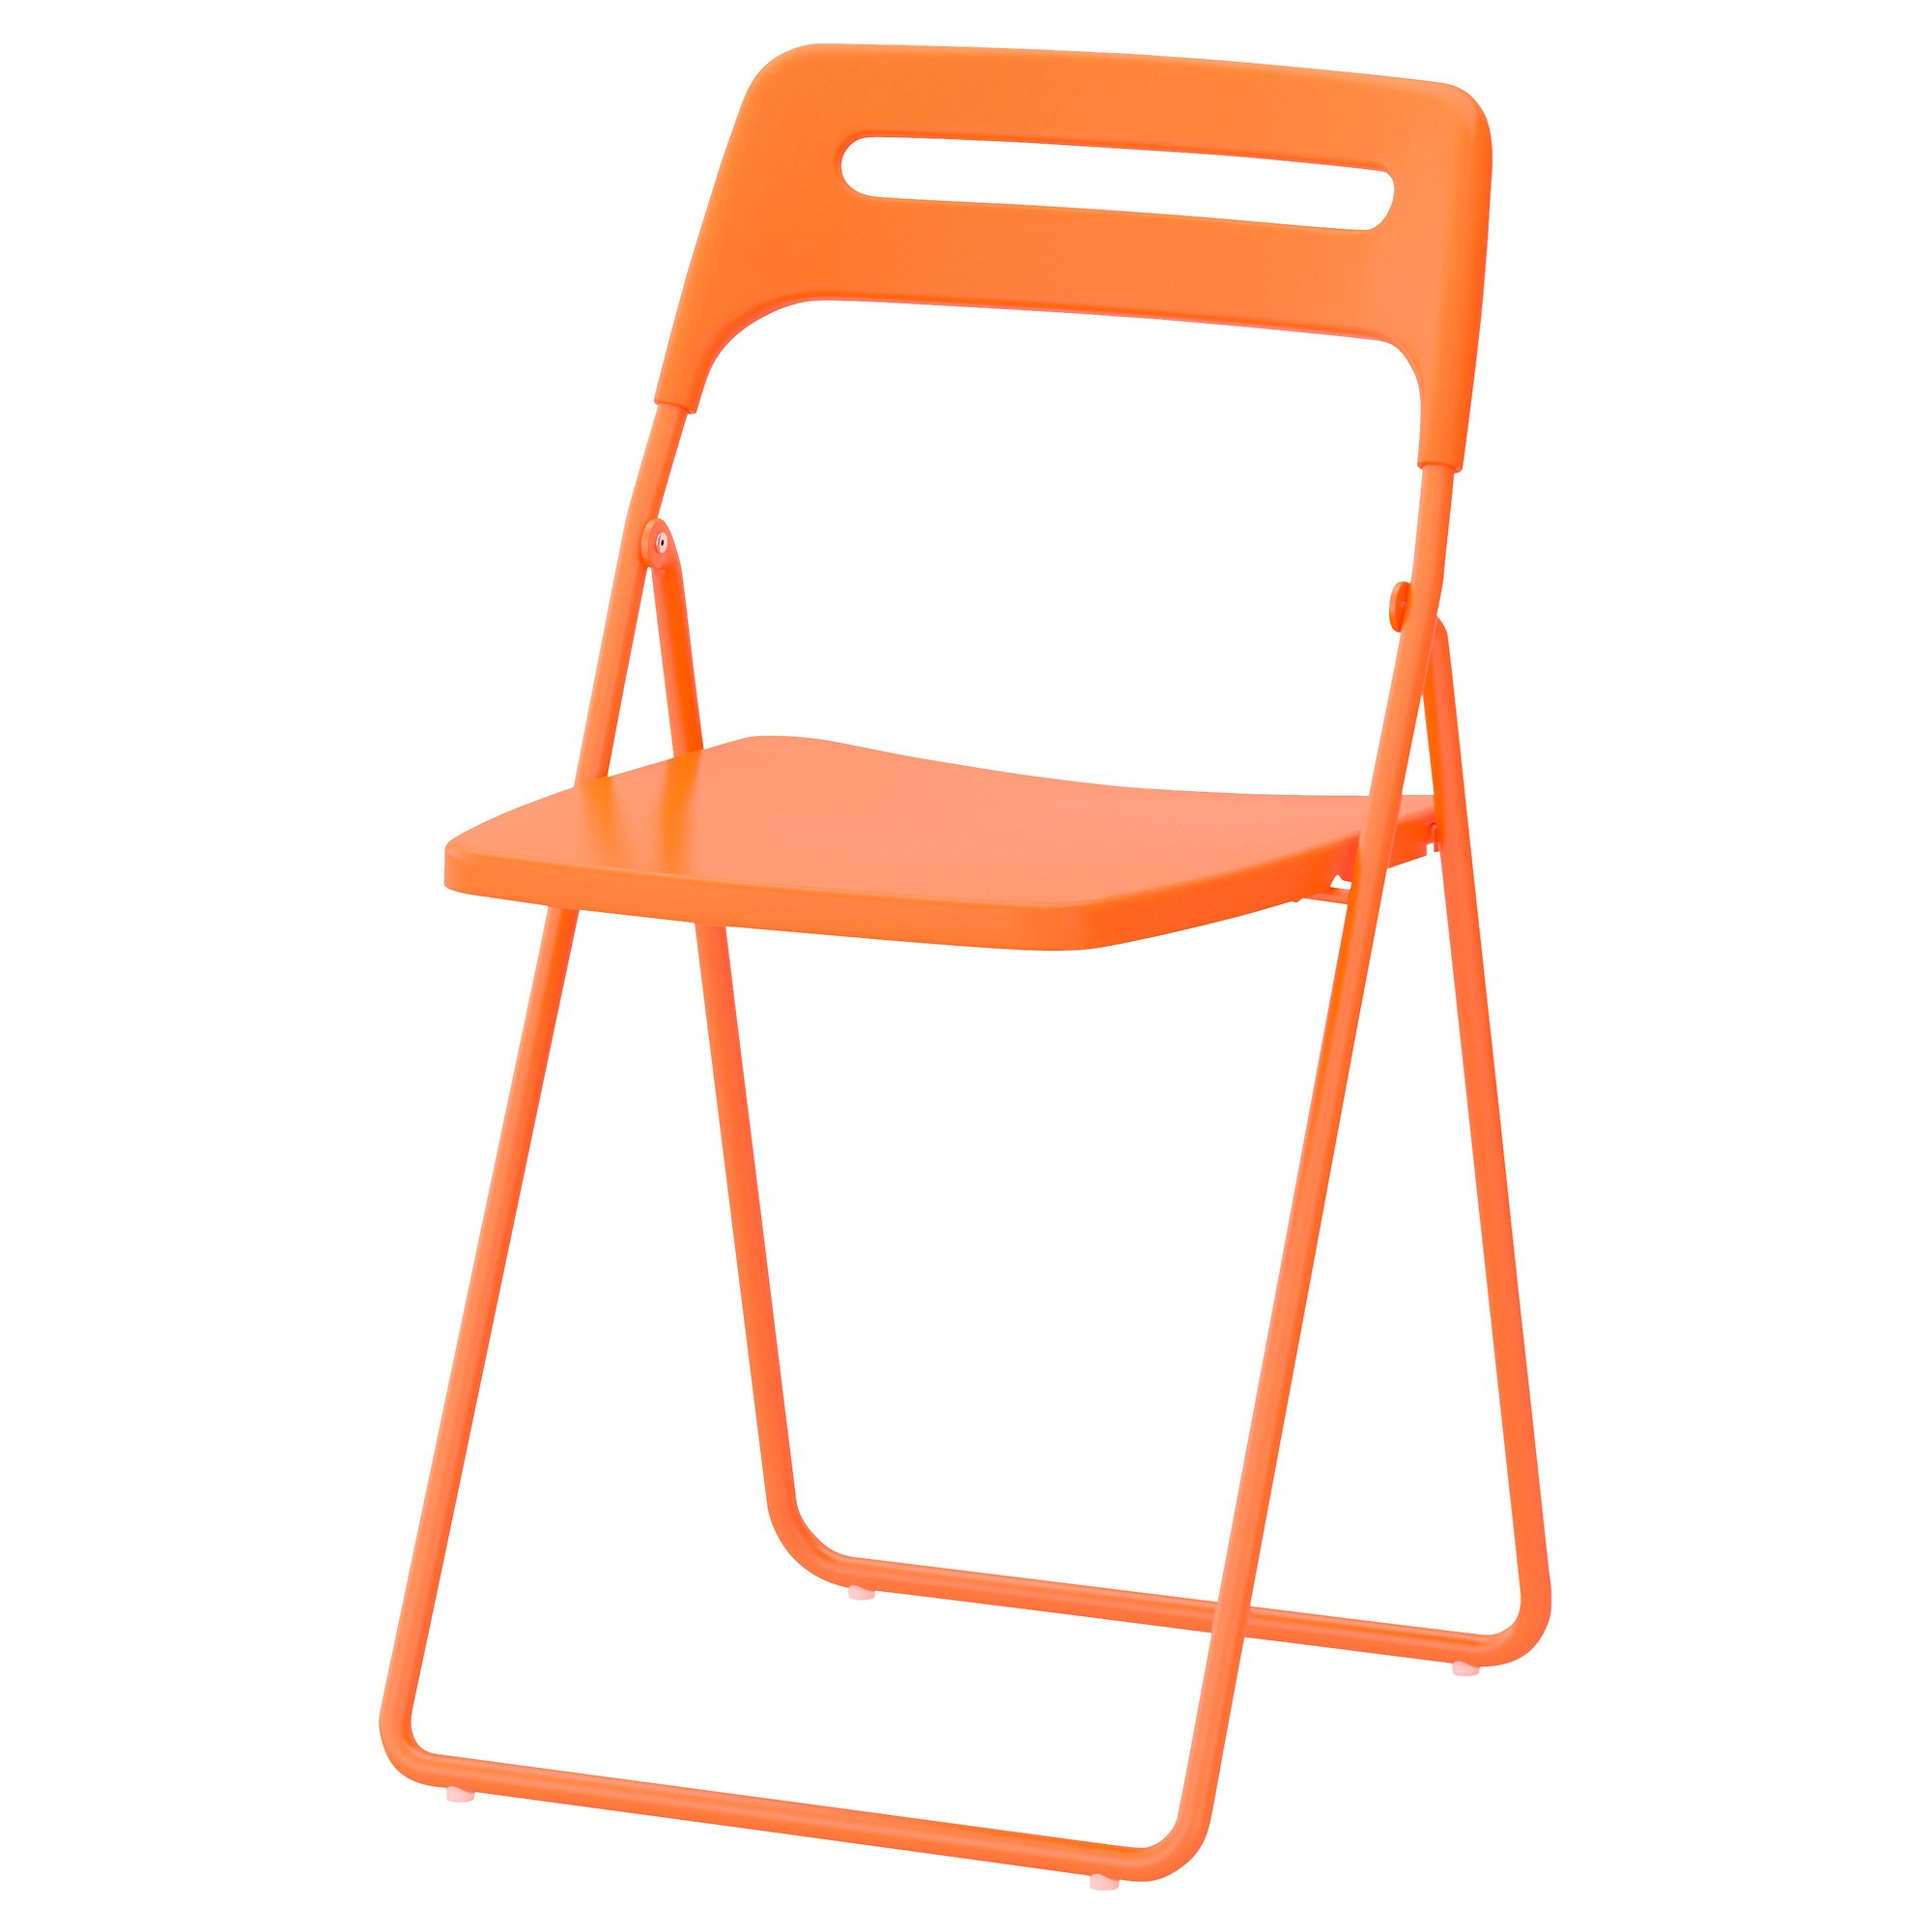 NISSE folding chair orange